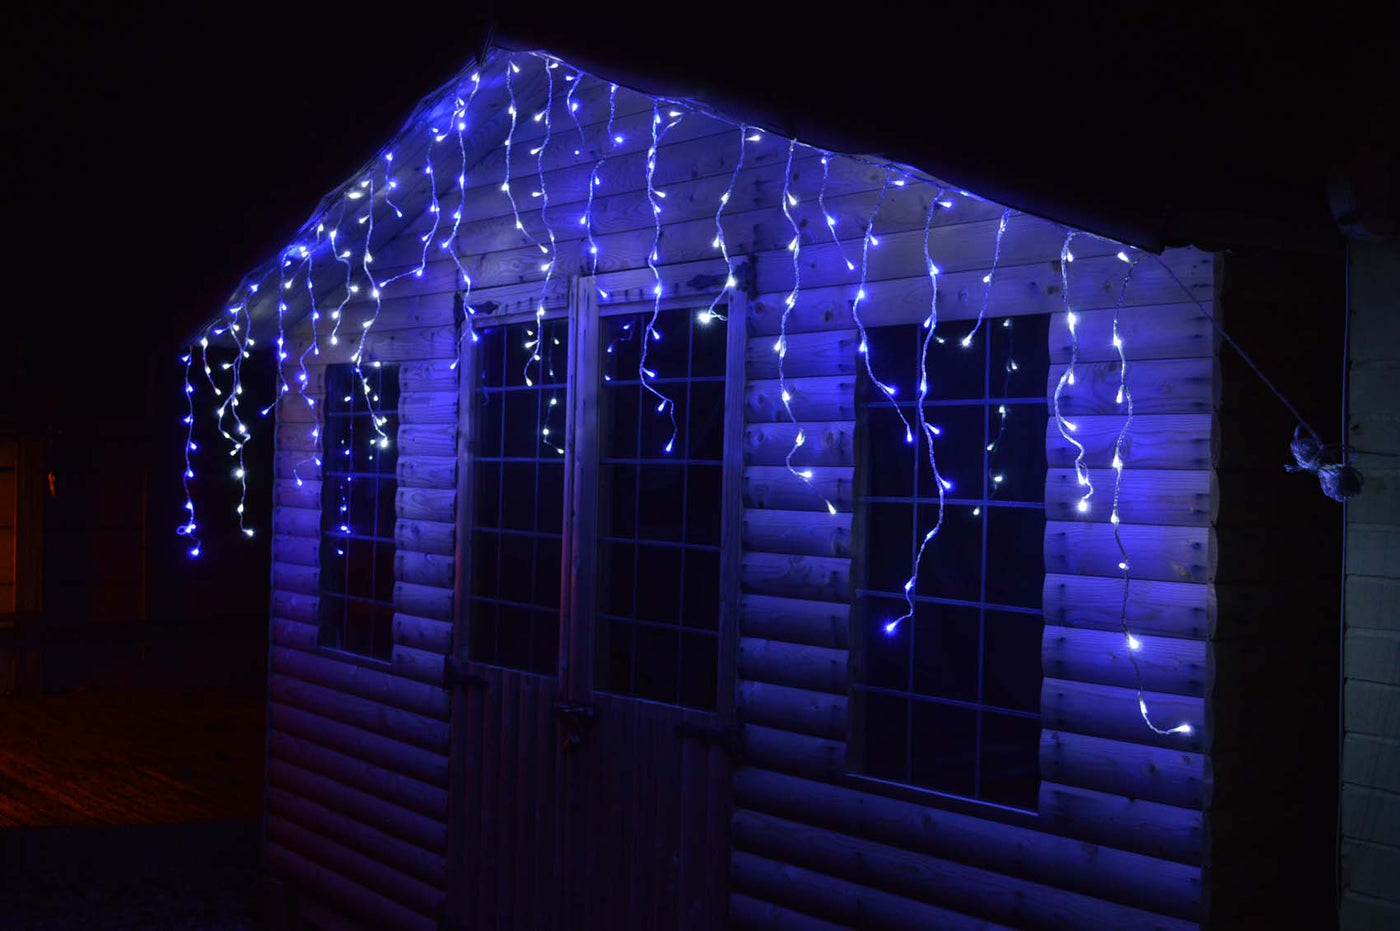 Icicle Christmas Lights.4 4m Premier 180 Led Outdoor Snowing Icicle Christmas Lights Blue